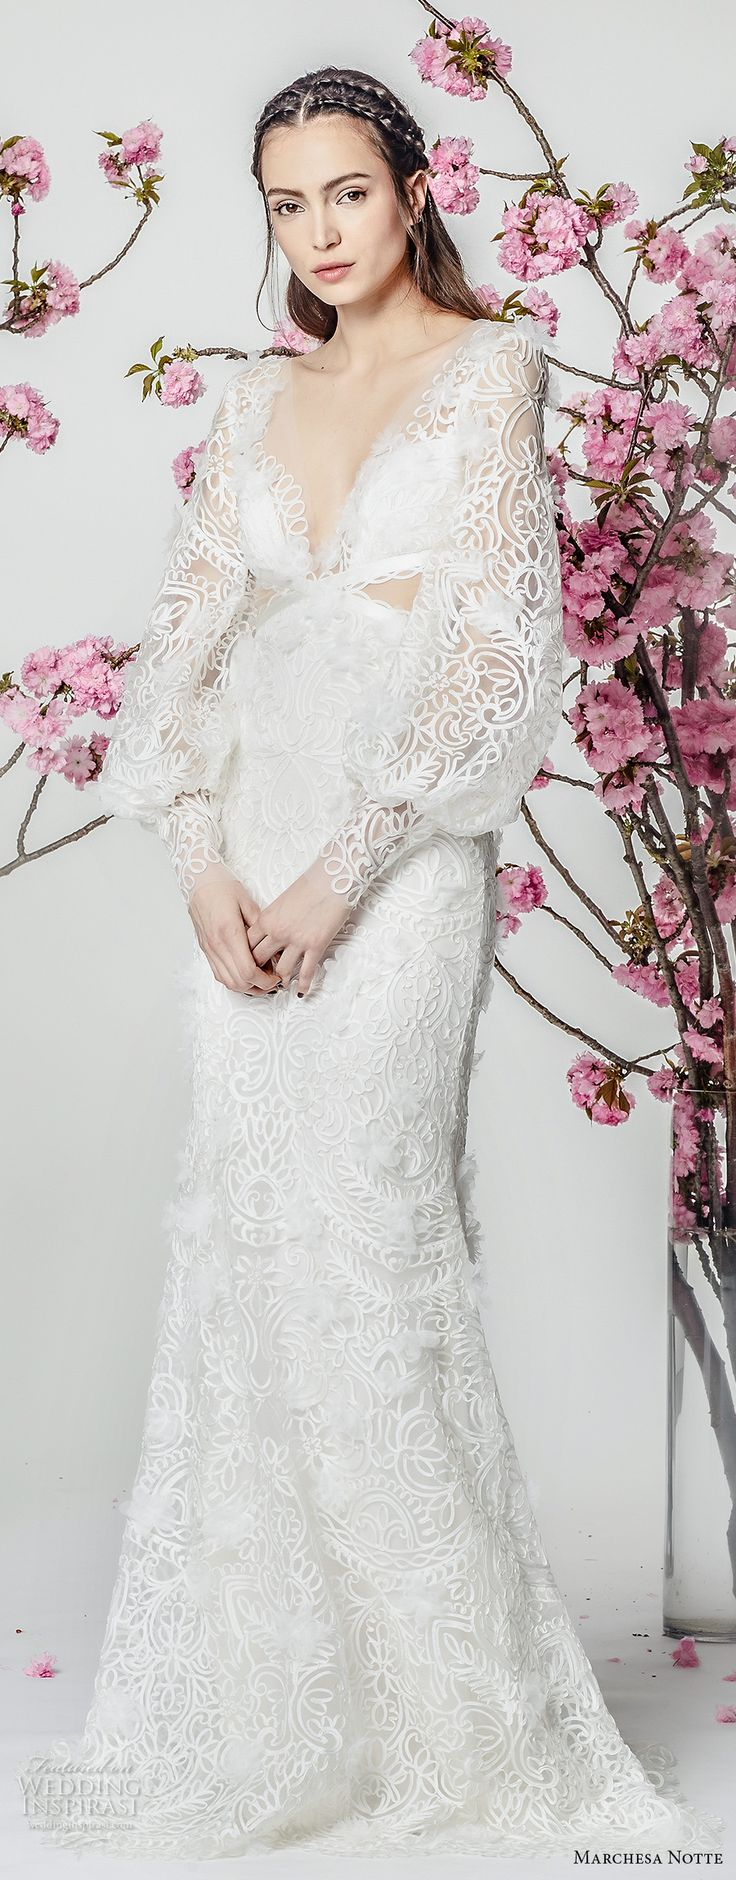 marchesa notte spring 2018 bridal long bishop sleeves deep v neckline full embellishment elegant fit and flare wedding dress sweep train (10) mv -- Marchesa Notte Spring 2018 Wedding Dresses